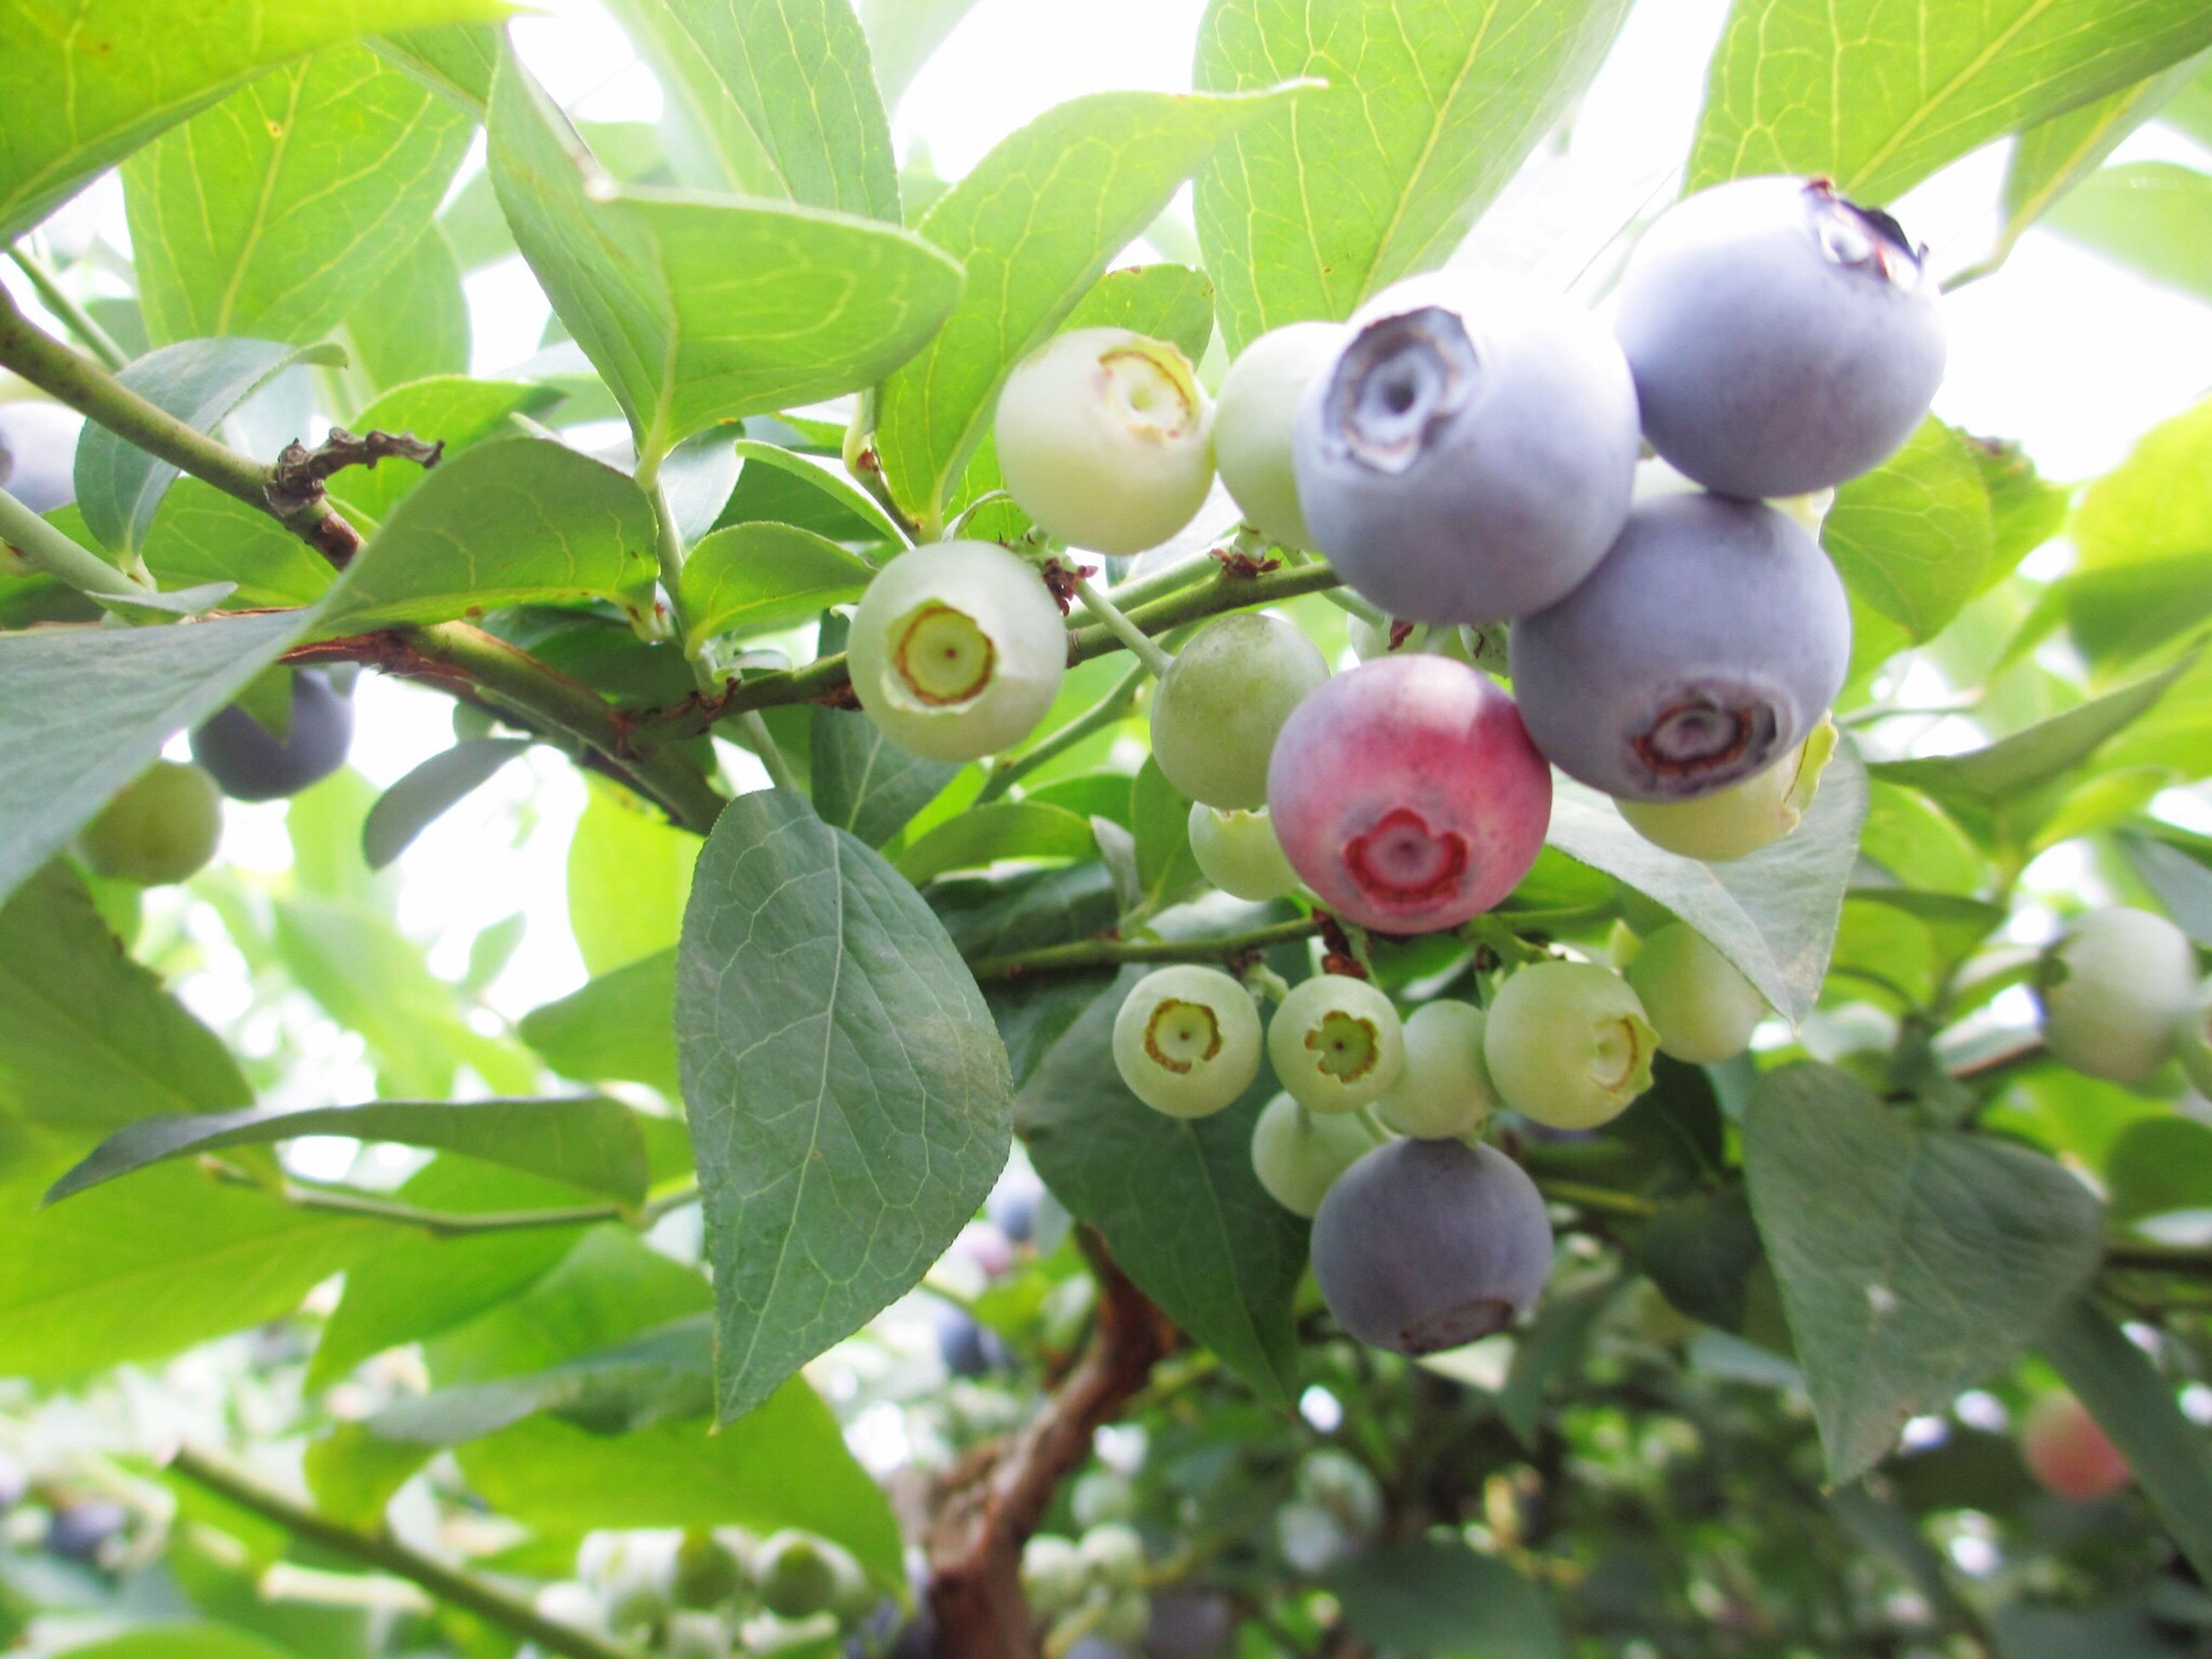 leaf, fruit, growth, freshness, food and drink, tree, branch, low angle view, food, green color, hanging, healthy eating, nature, close-up, plant, day, beauty in nature, bunch, berry fruit, outdoors